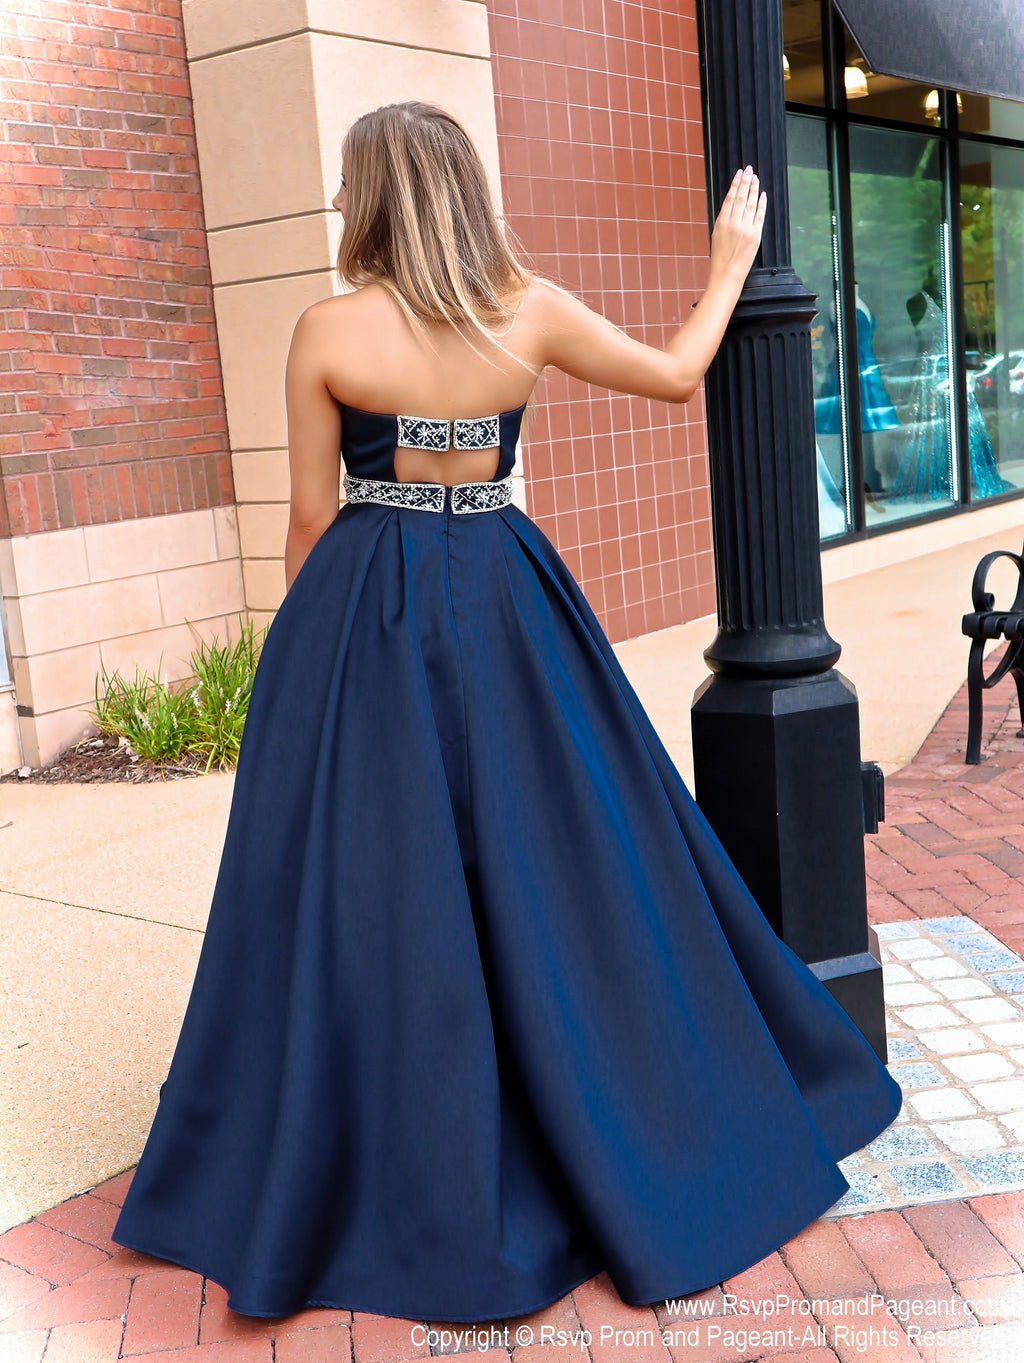 Back of model in the prettiest ball gown you've ever seen with its halter neckline and beautifully detailed back straps! And it's at Rsvp Prom and Pageant, your source for the HOTTEST Prom and Pageant Dresses and Exclusive Evening Gowns and located in Atlanta, Georgia!